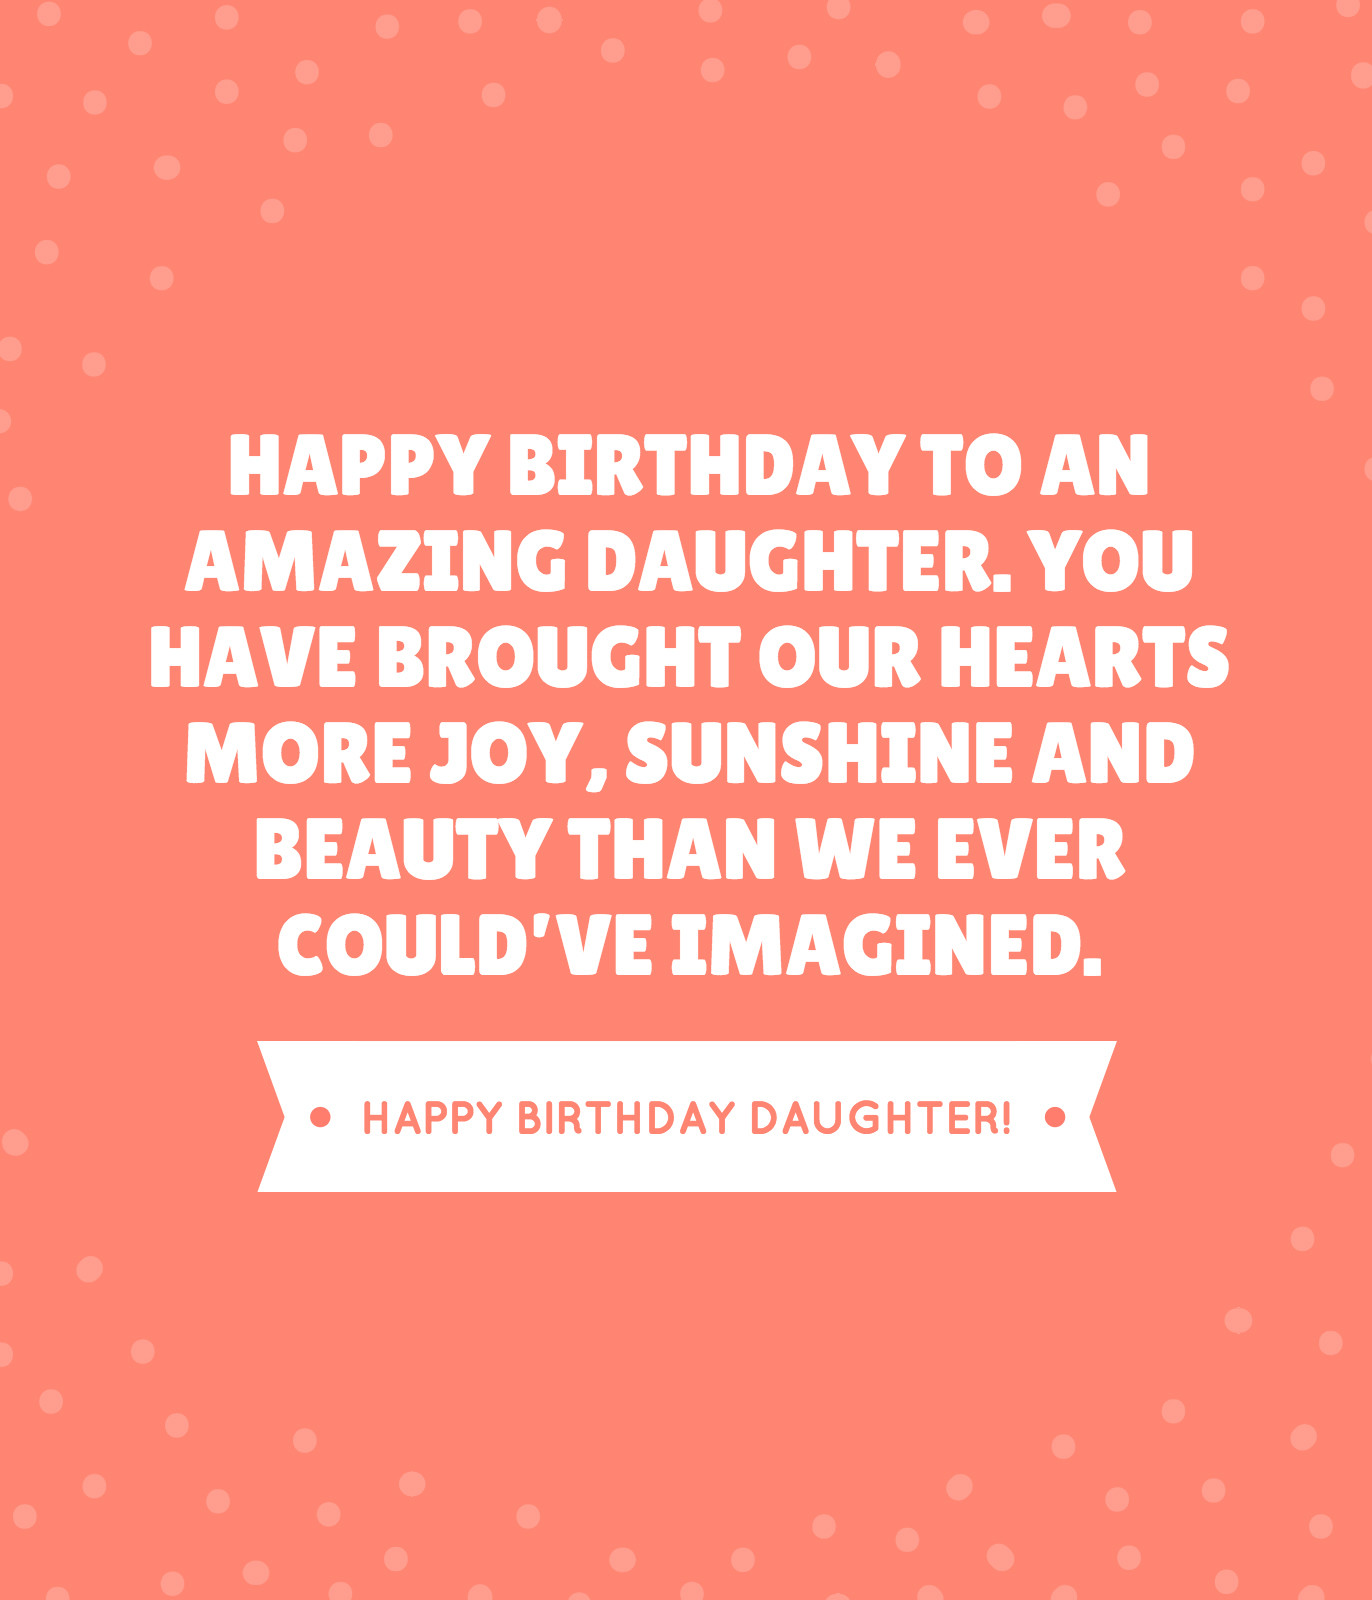 Best ideas about Funny Birthday Wishes For Daughter . Save or Pin 35 Beautiful Ways to Say Happy Birthday Daughter Unique Now.